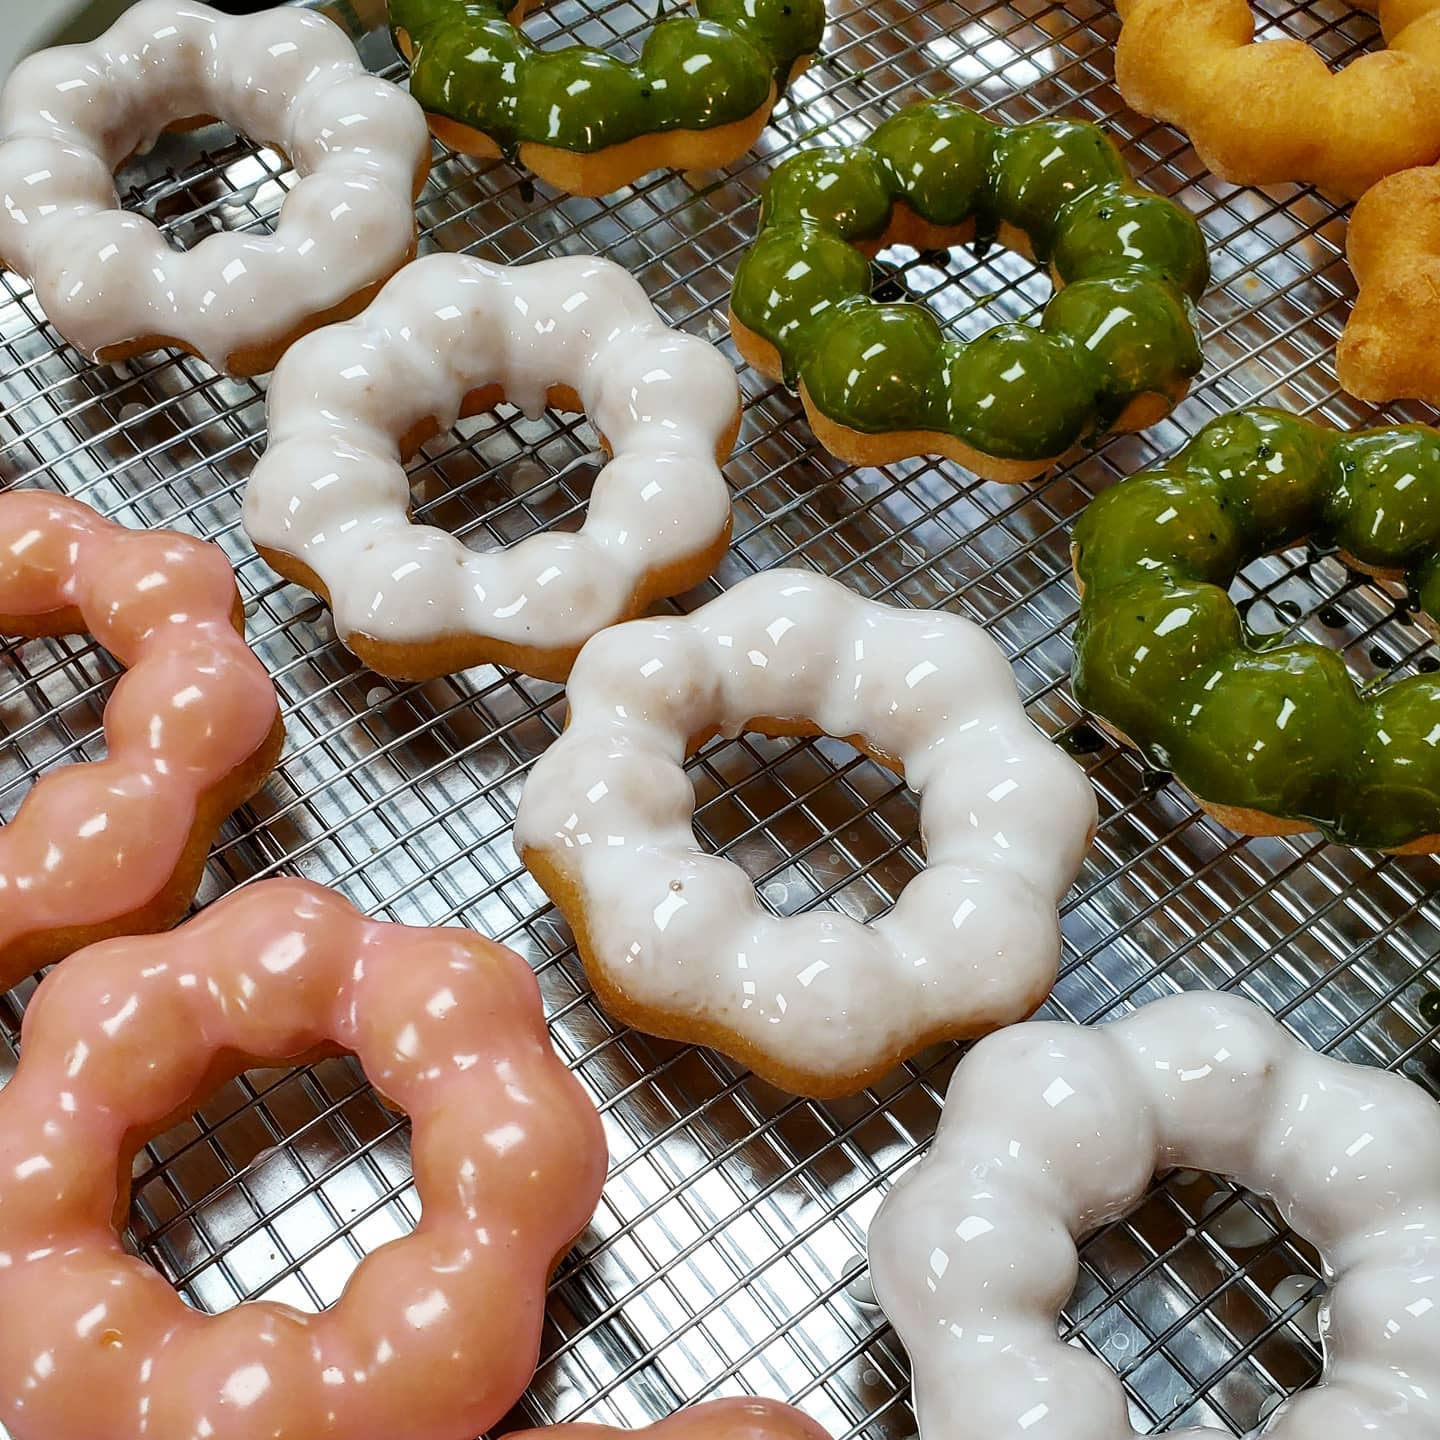 Pink, white, and green doughnuts from Mochinut